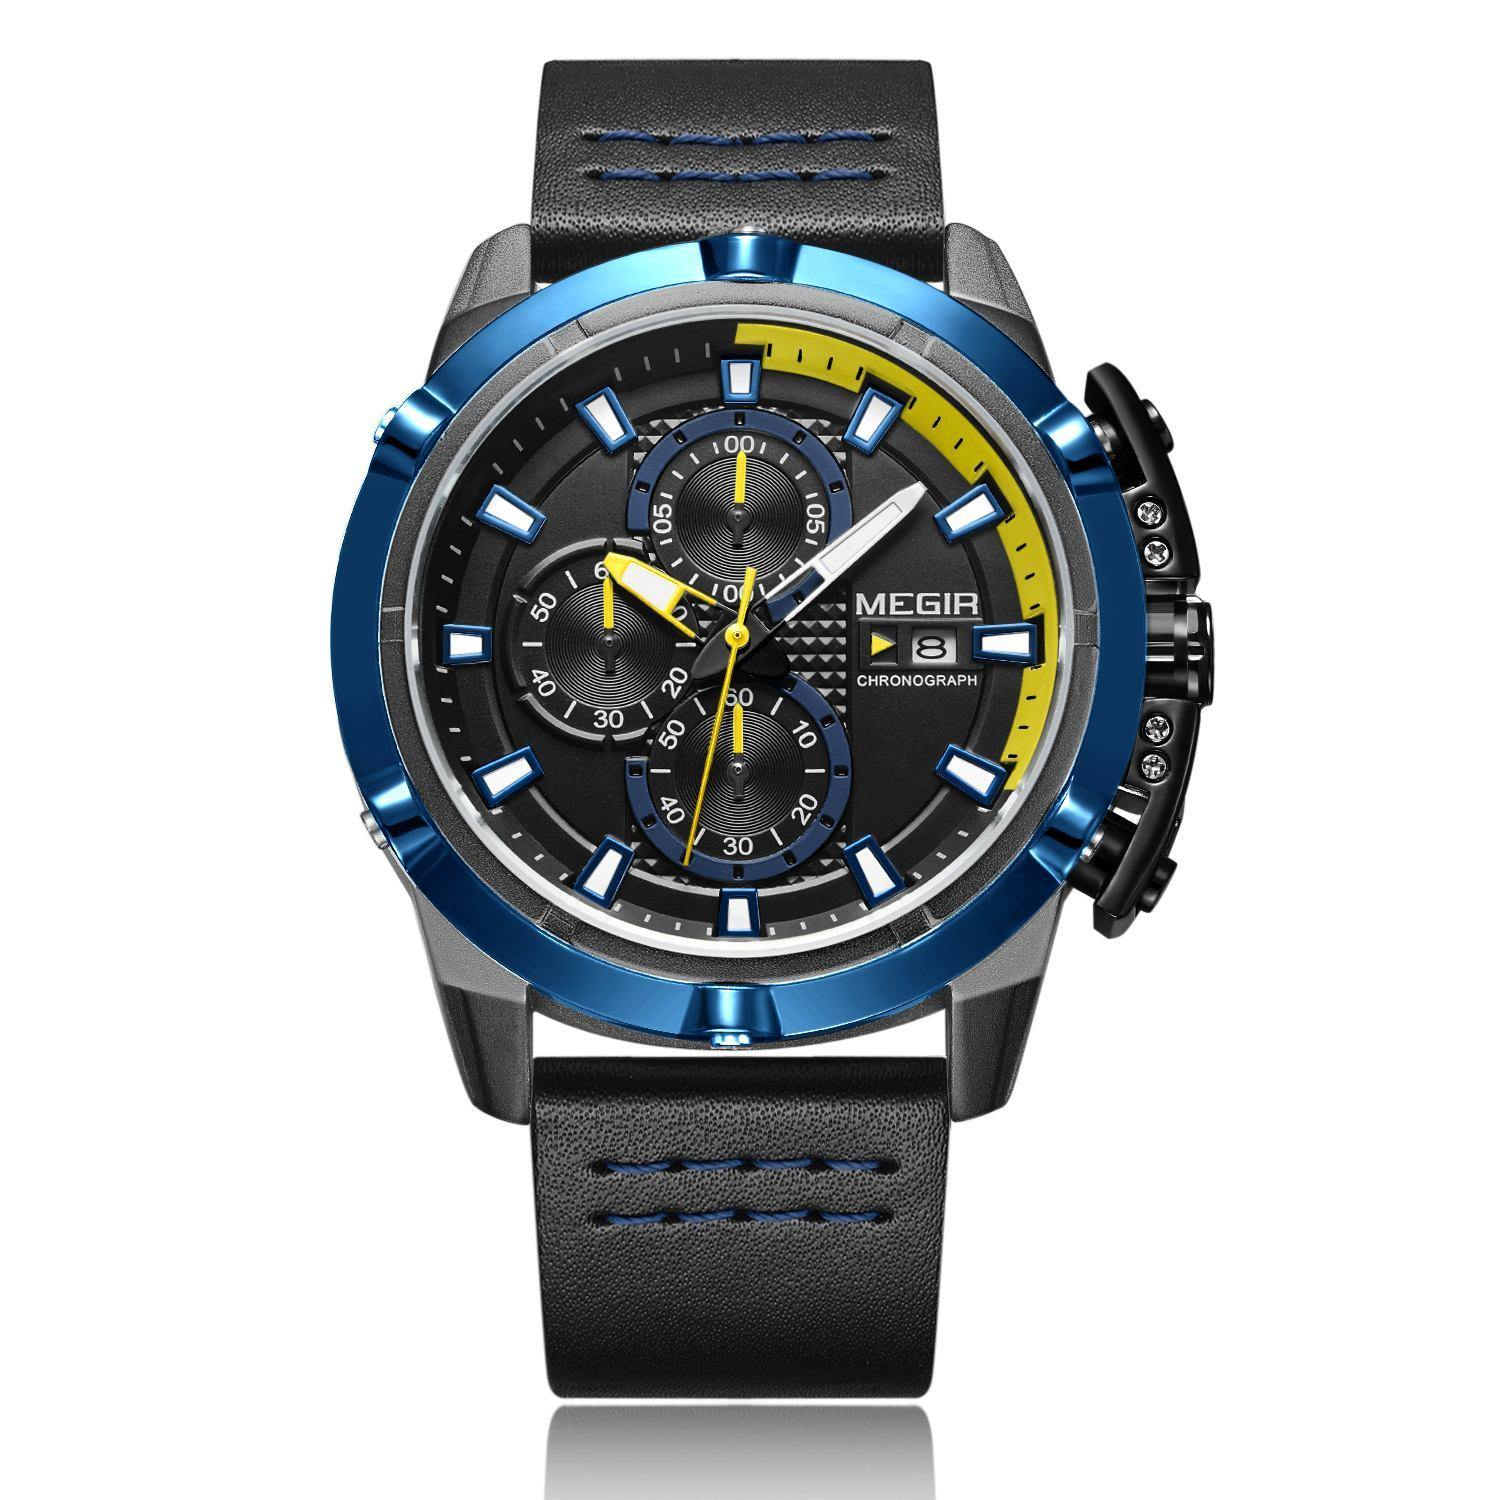 MEGIR men's quartz sports watch 2062 - MEGIR